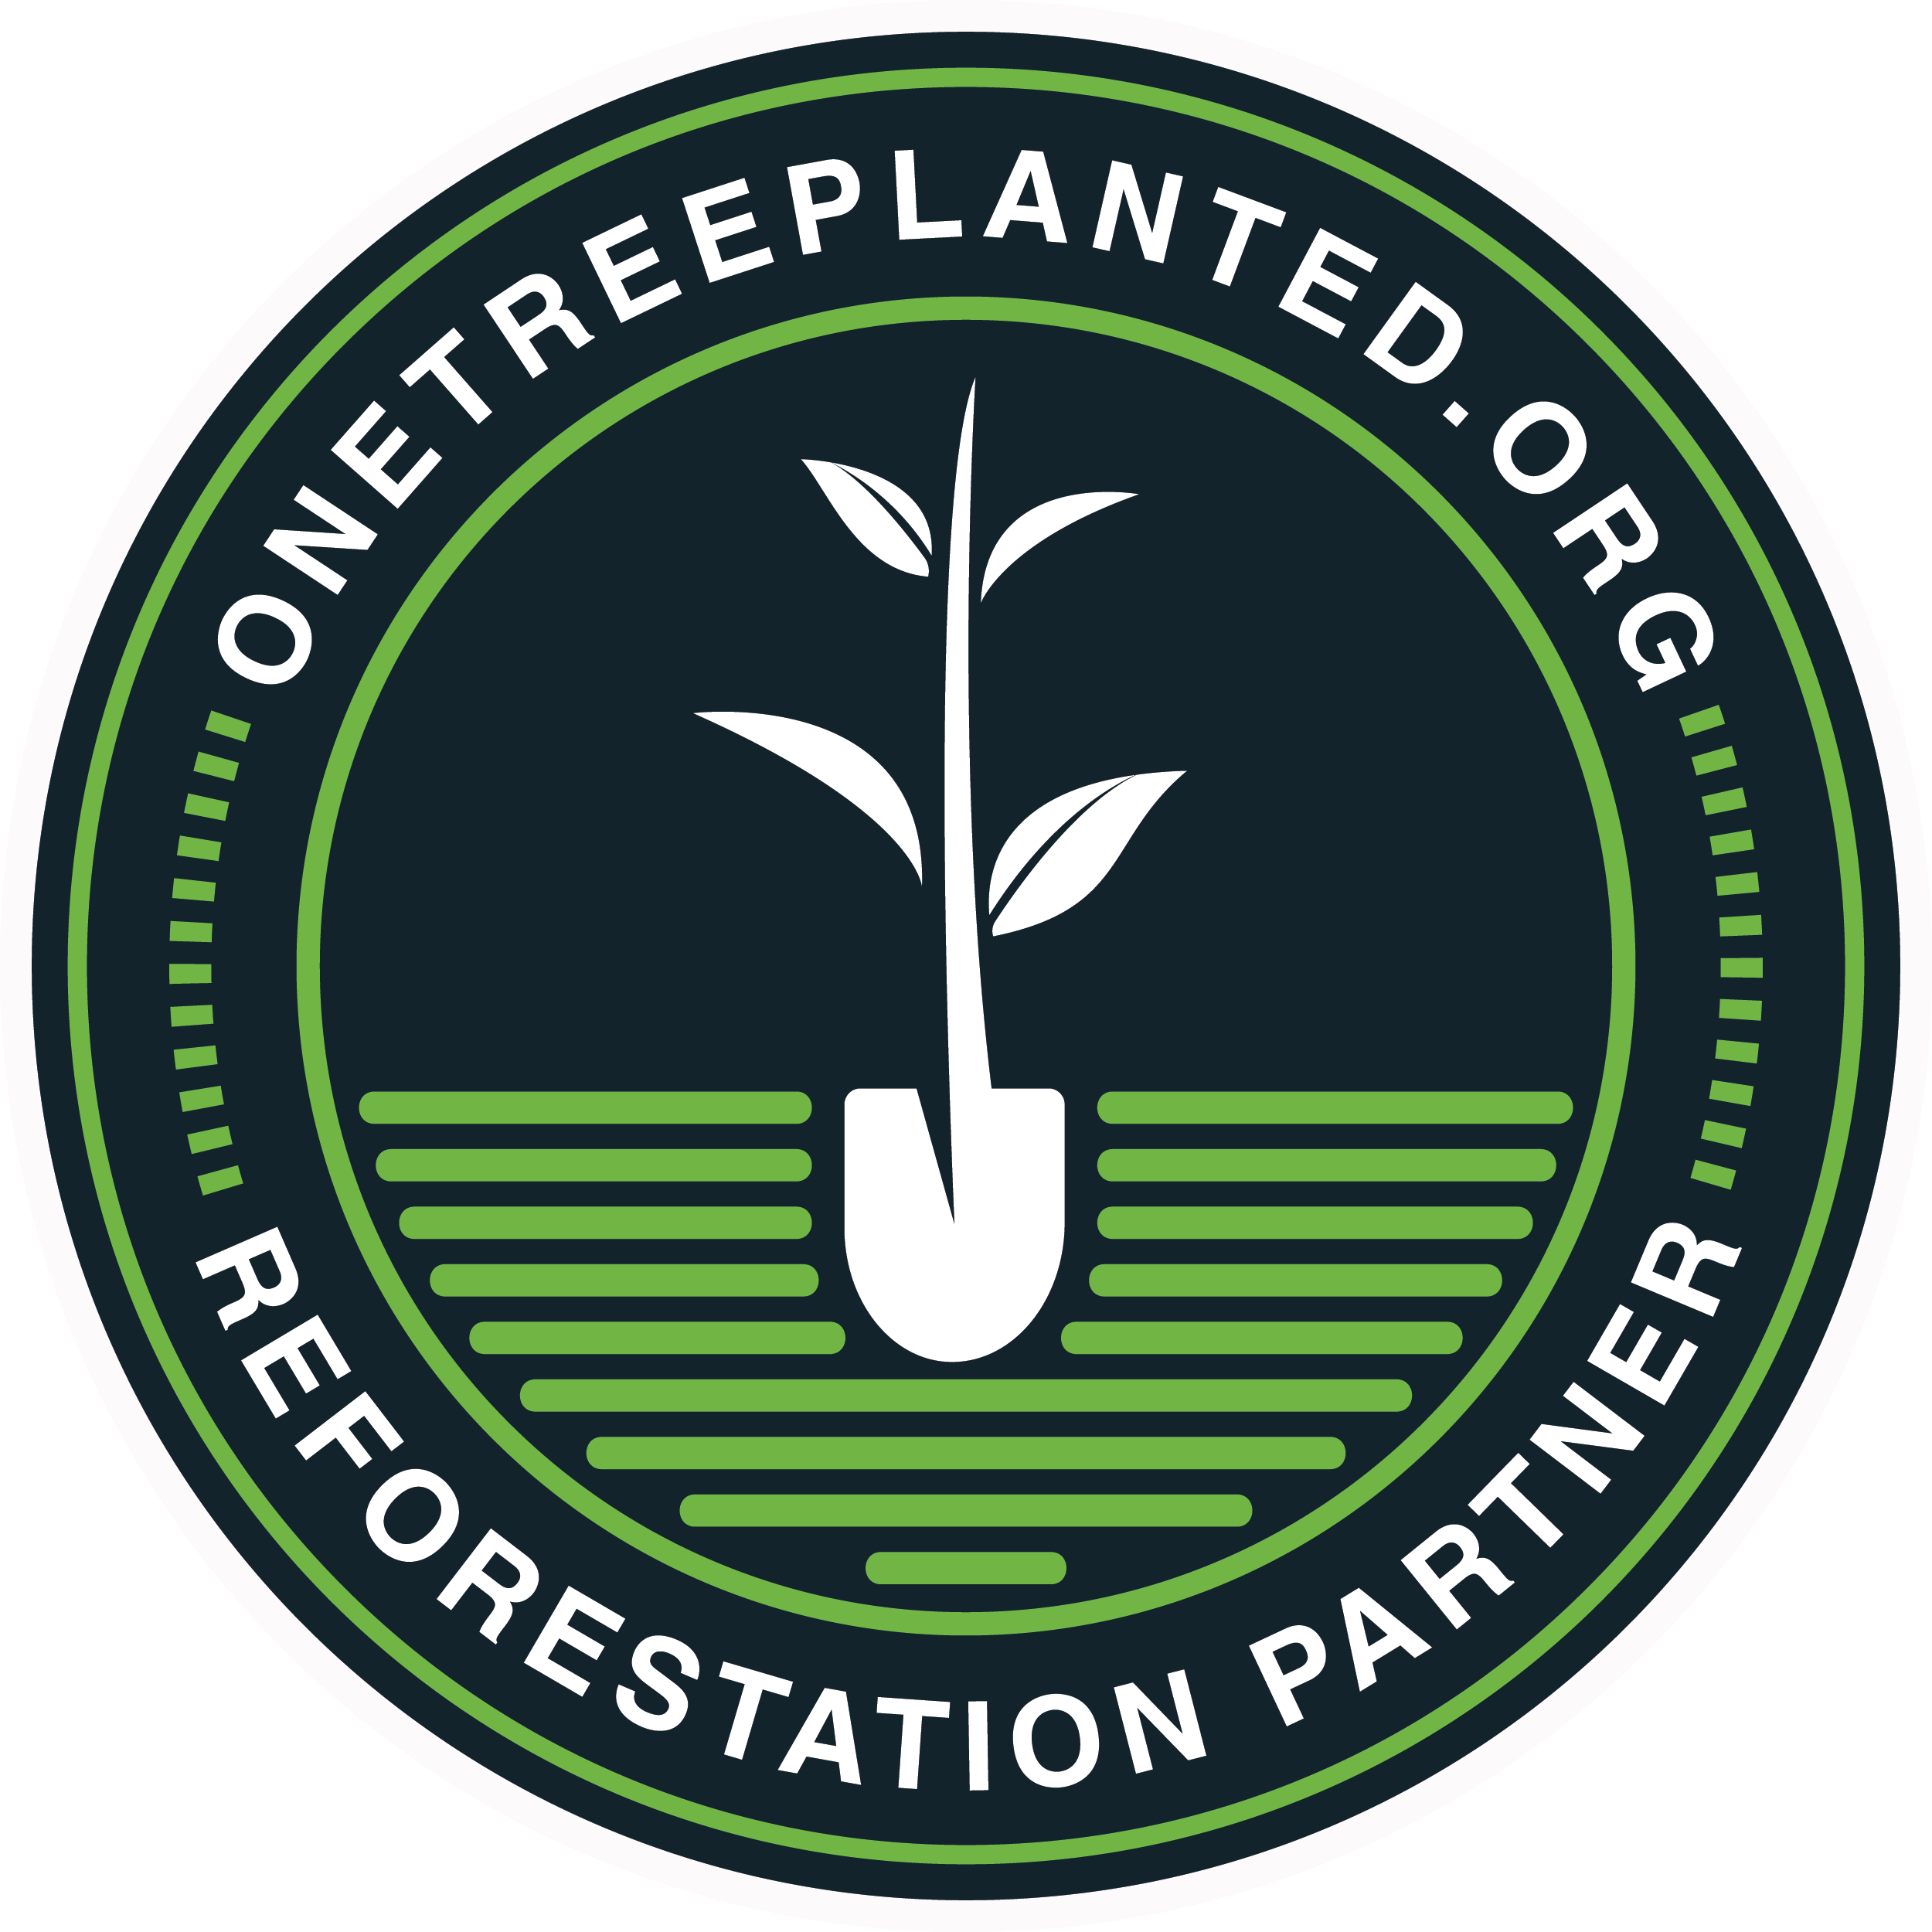 one-tree-planted-partnership-cleaning-services